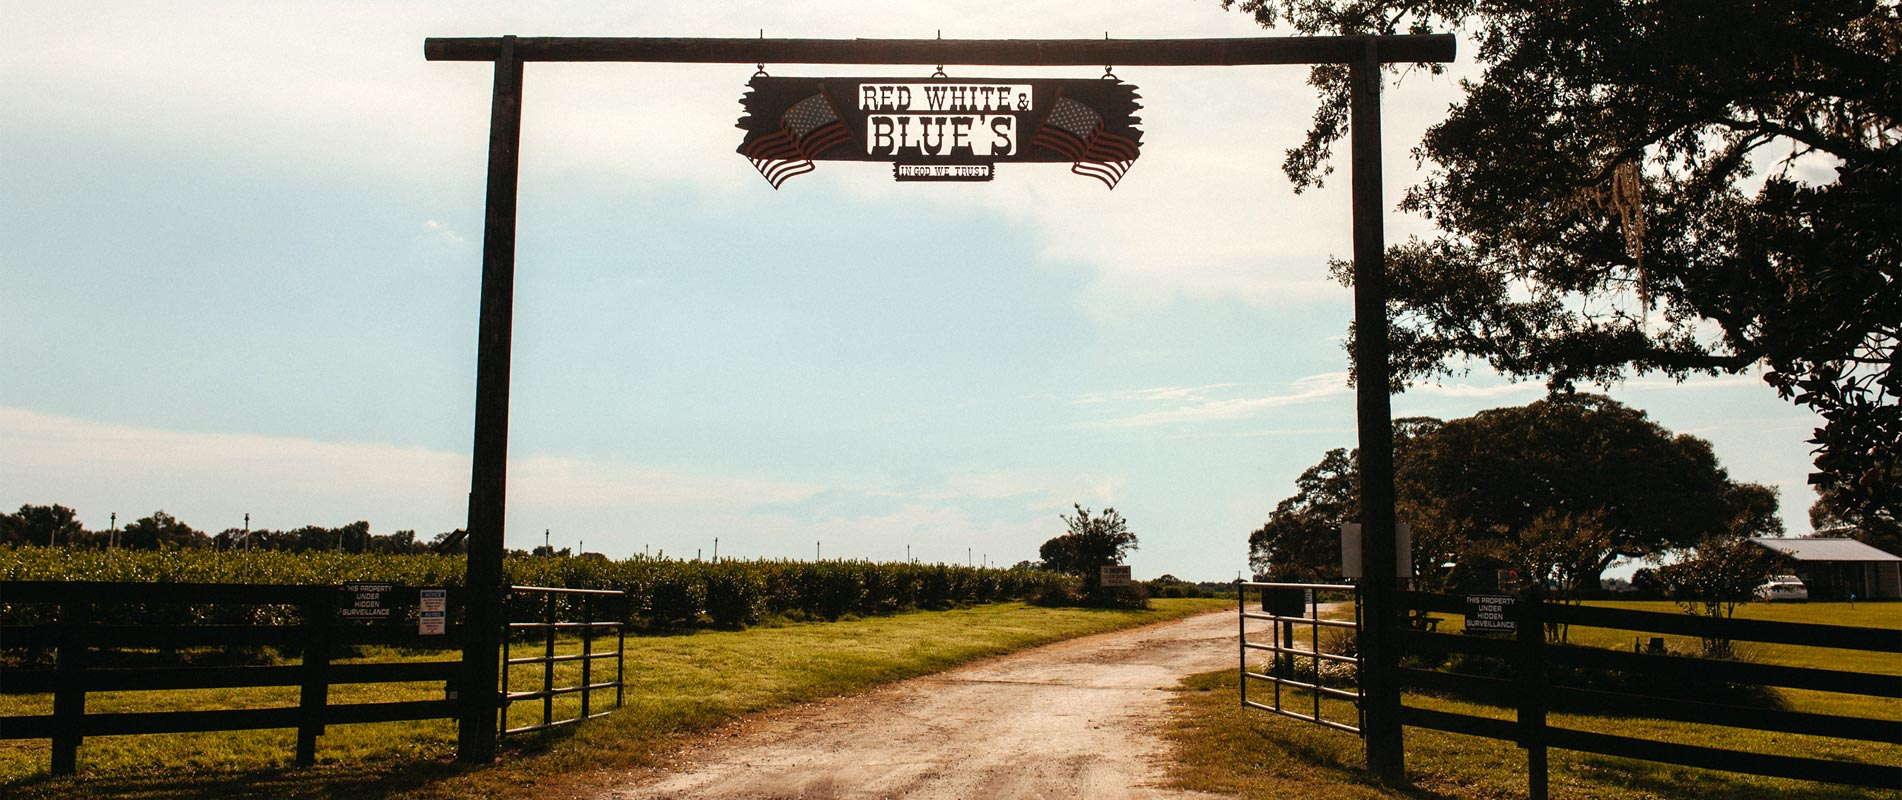 Entrance of Red, White and Blues Farm, In God We Trust